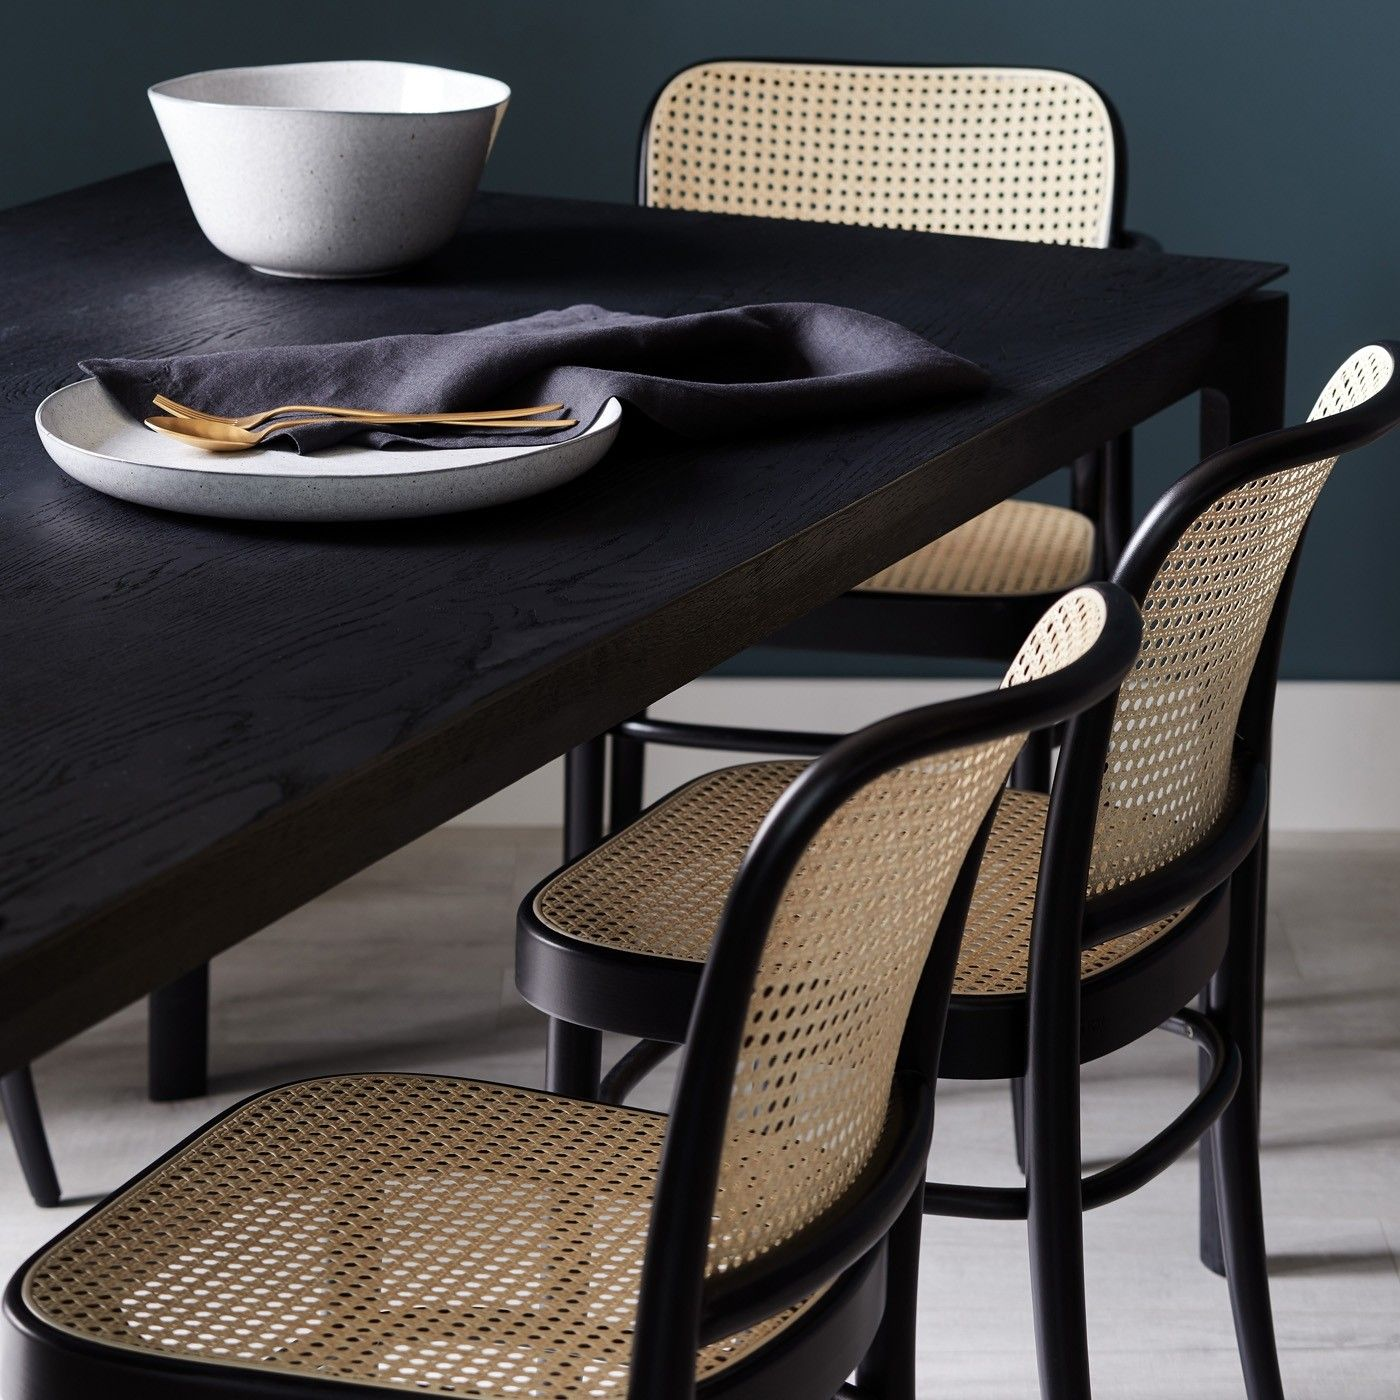 811 Black Side Chair In 2021 Rattan Dining Chairs Cane Dining Chairs Black Dining Room Chairs